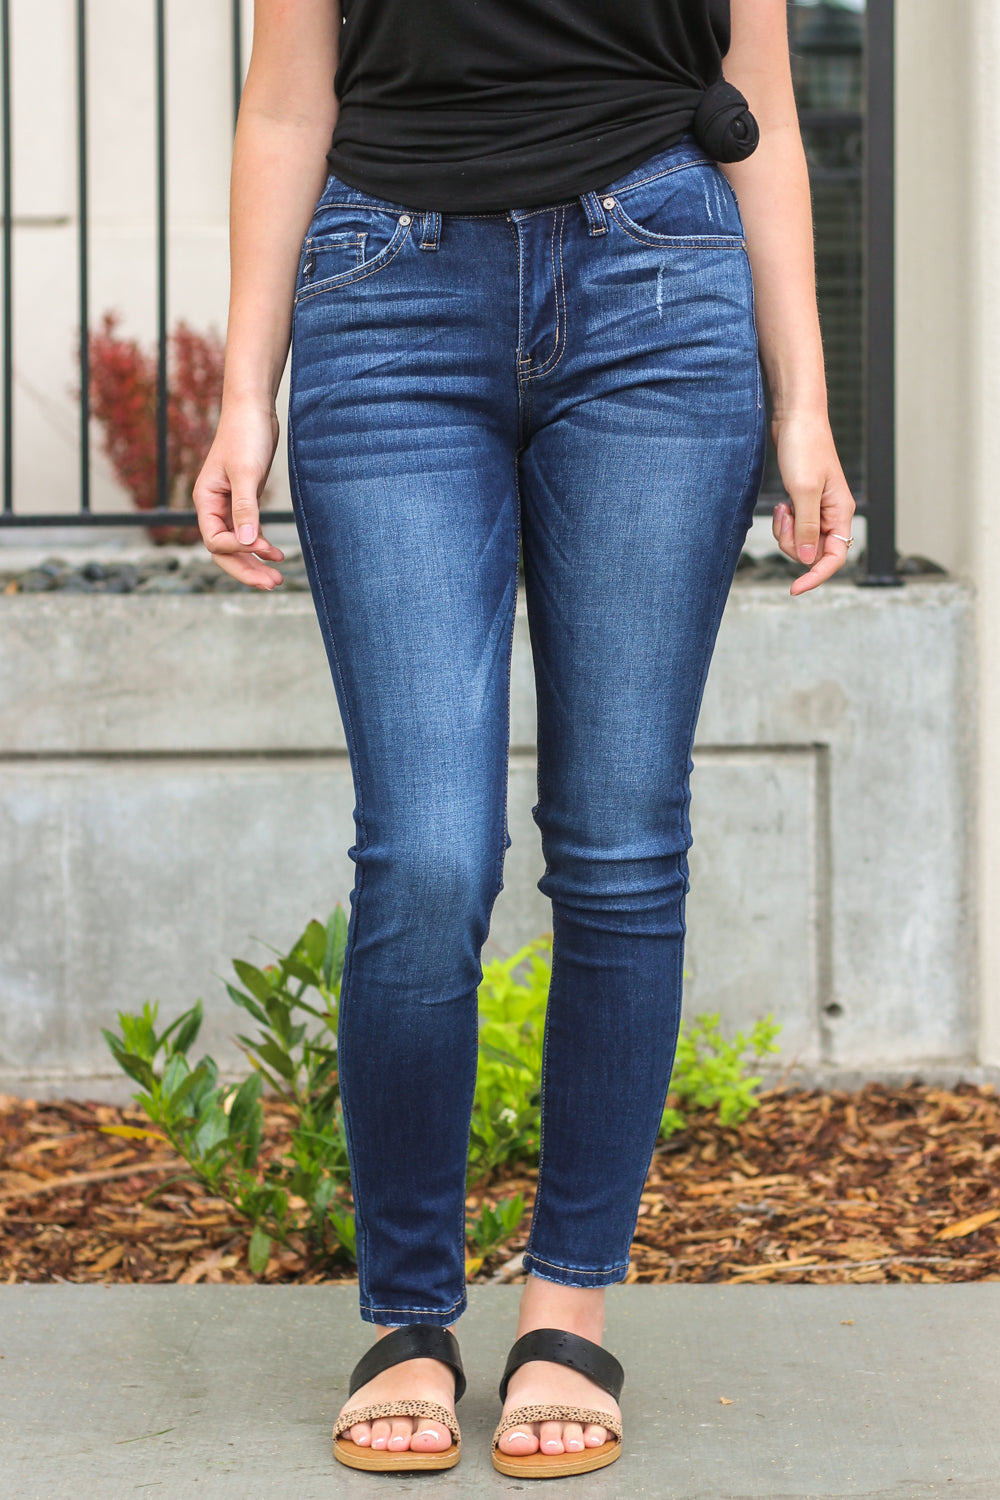 "Kan Can Jeans Collection: Summer 2020 Color: Dark Wash Cut: Skinny, 29.5"" Inseam Rise: Mid-Rise, 8.5"" Front Rise  Material: 54% COTTON 34% RAYON 10% POLYESTER 2% SPANDEX Stitching: Classic Fly: Zipper Style #: KC7095HRD"